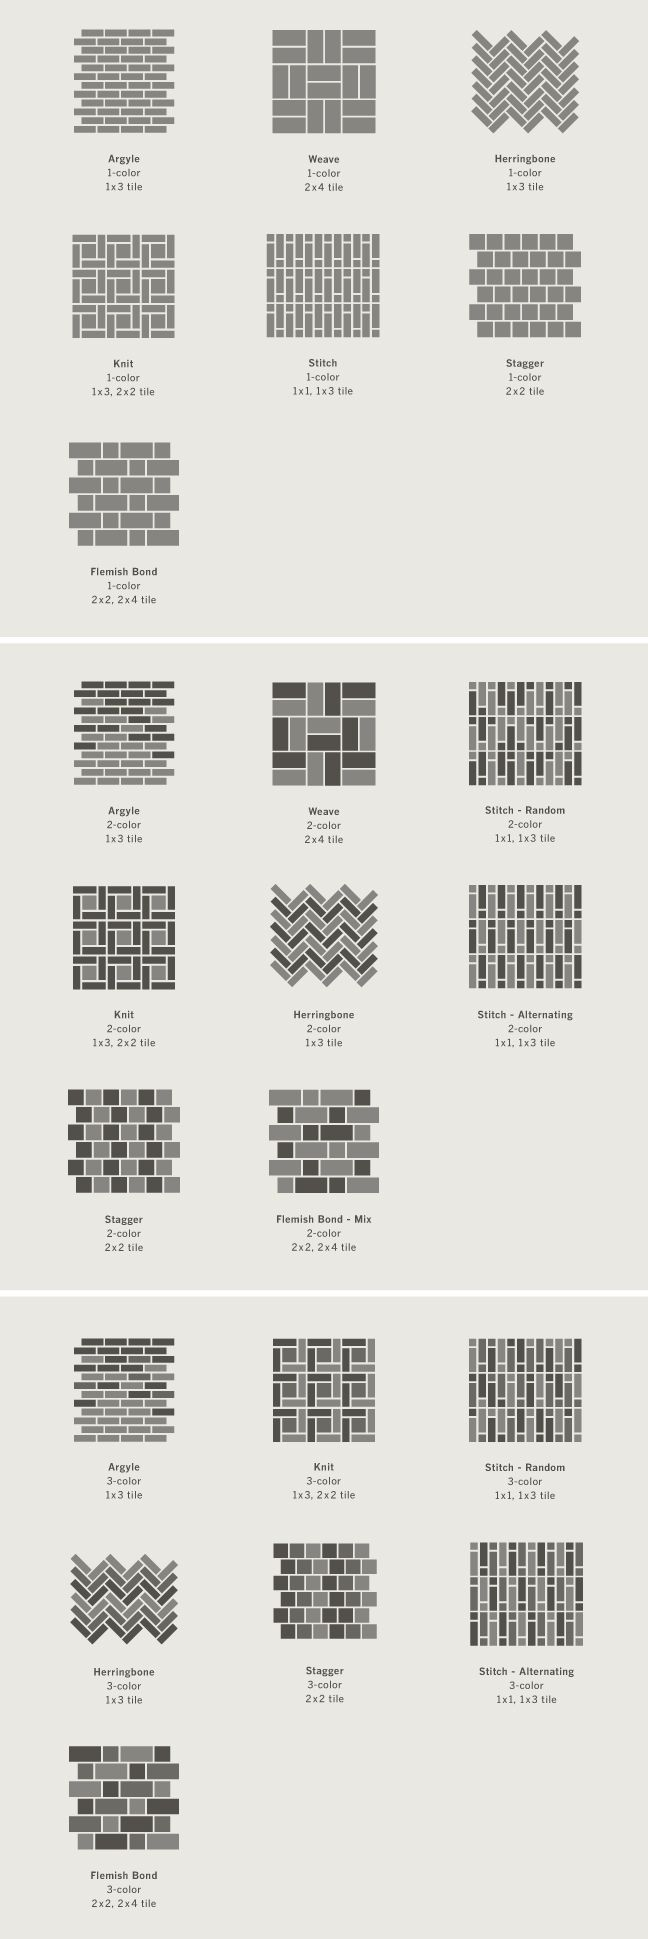 Great Ideas For Backsplash Or Bathroom Floor Design. Tapestry Collection    Heath Ceramics Layout Concepts